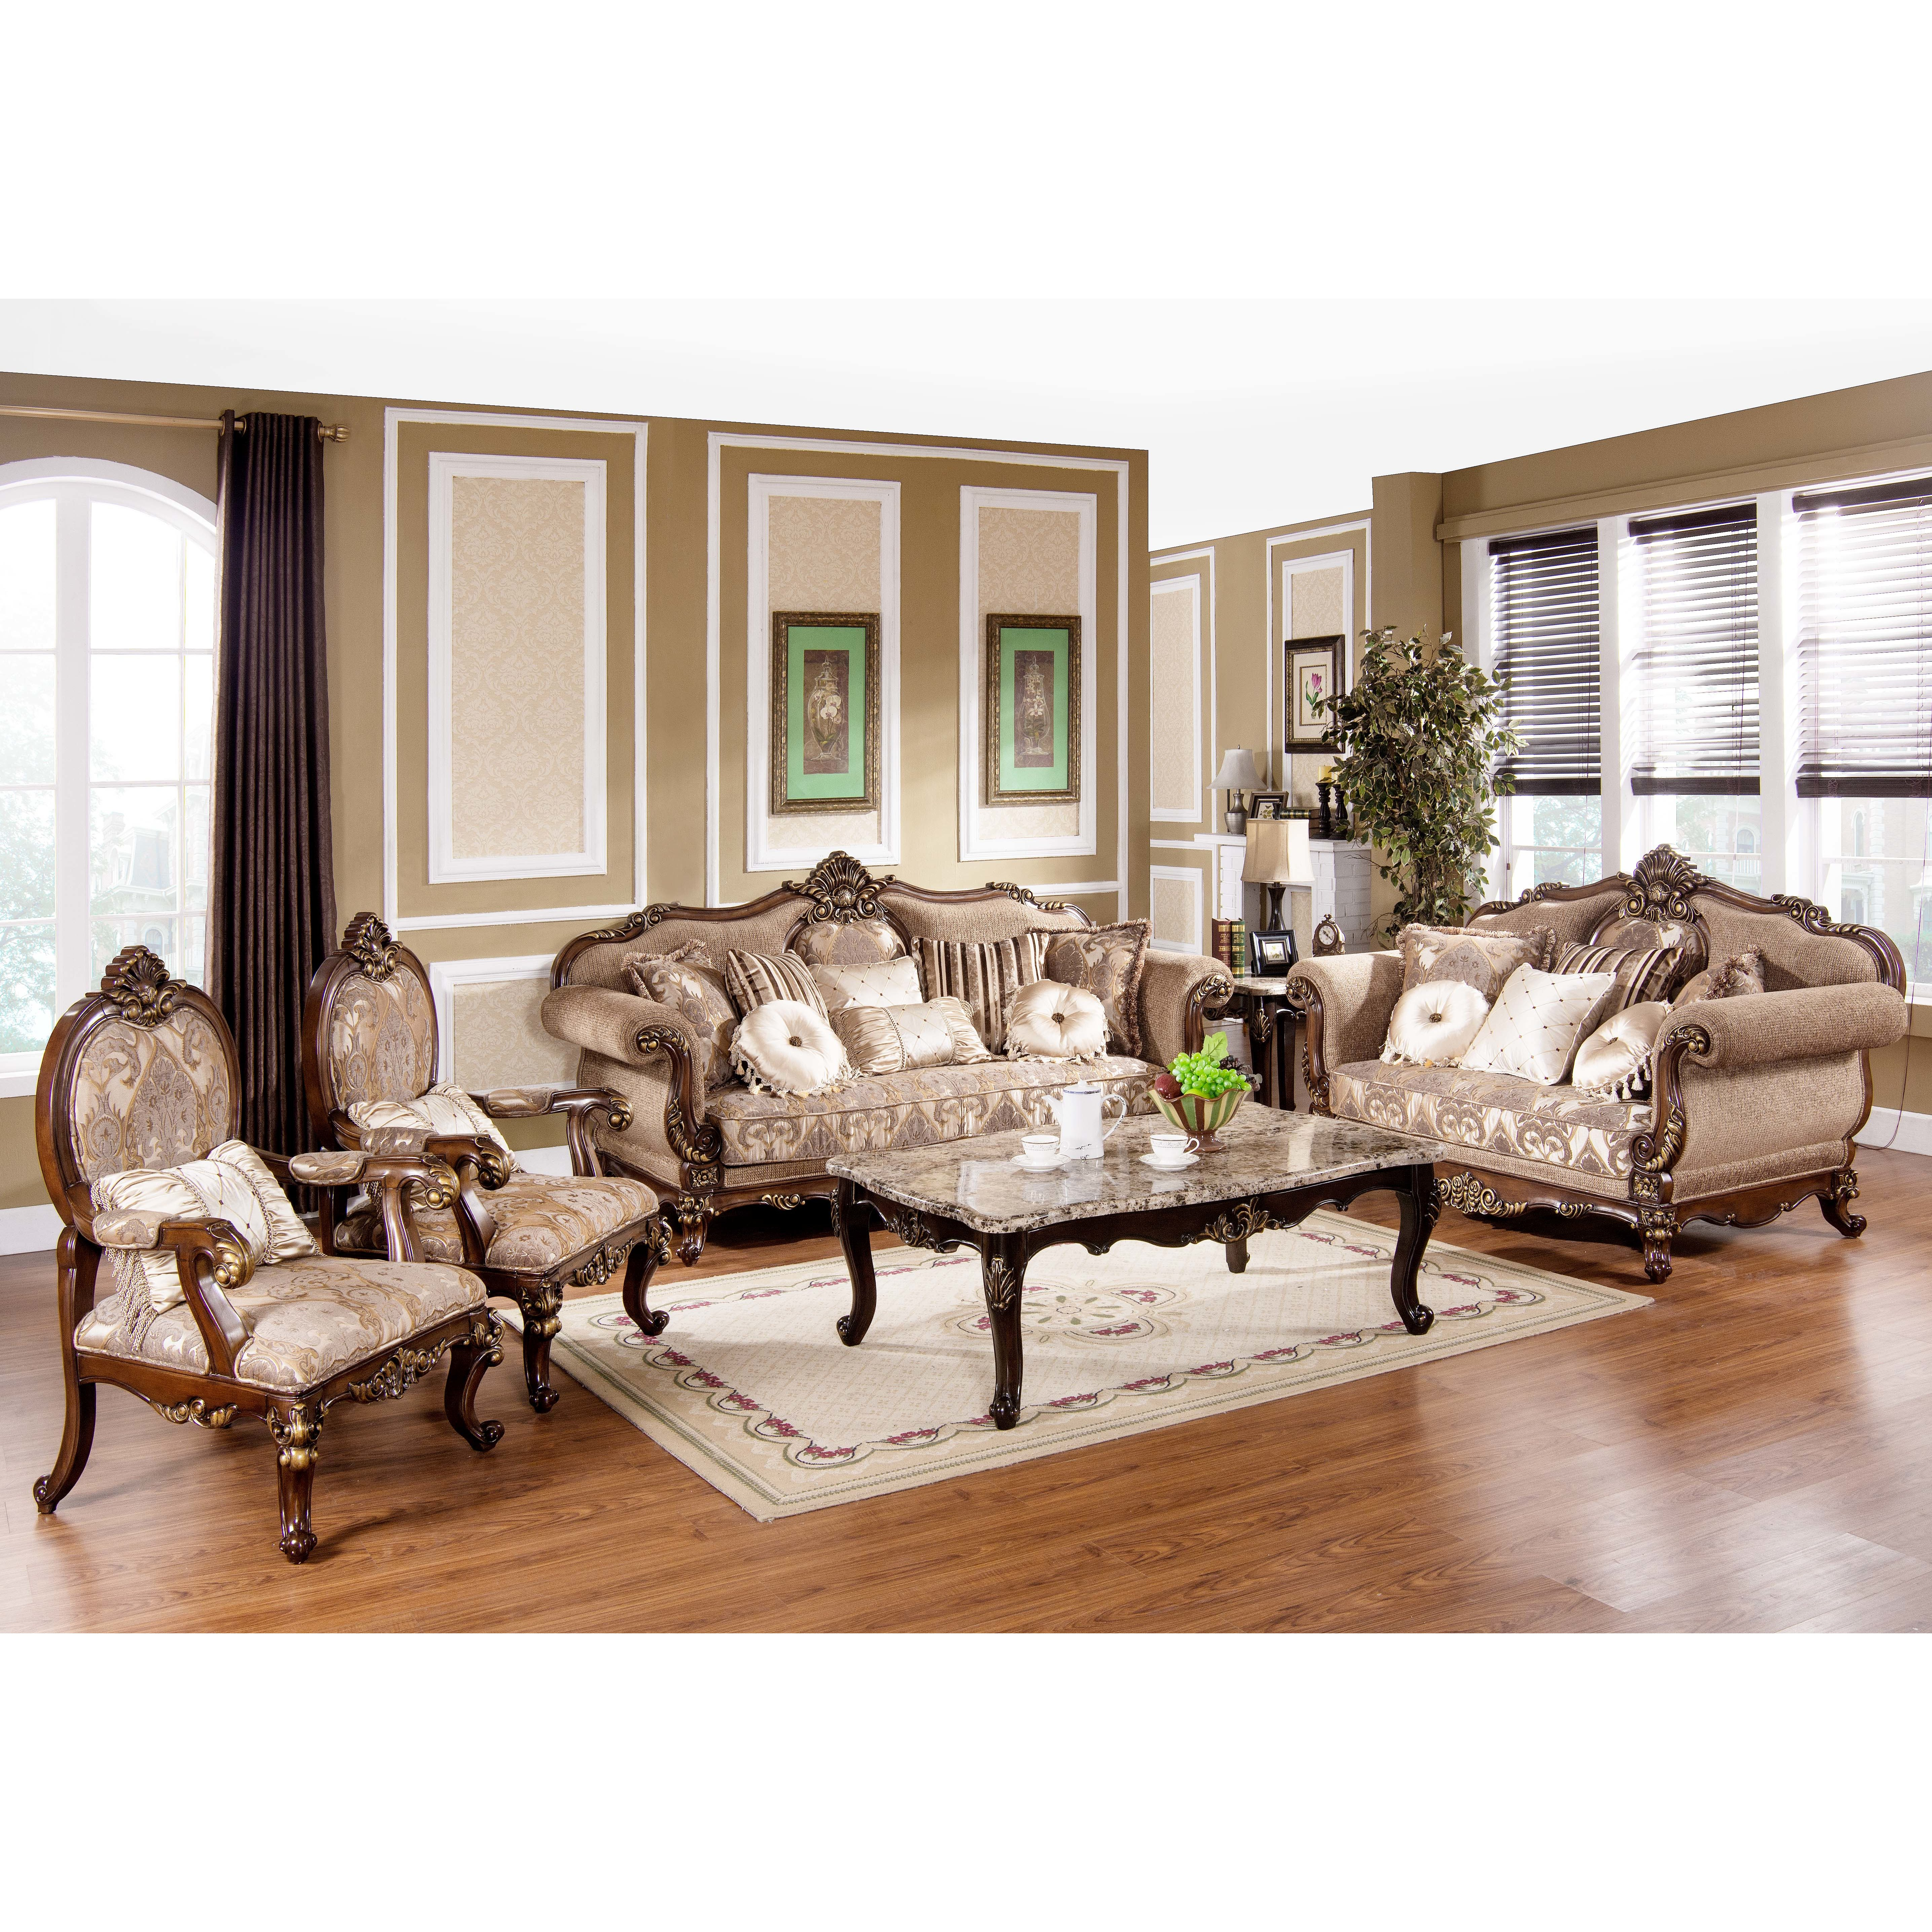 Traditional Living Room Furniture Awesome 37 Traditional Living Room Furniture Sets Pearl Color Leather Traditional Living Room Set 652